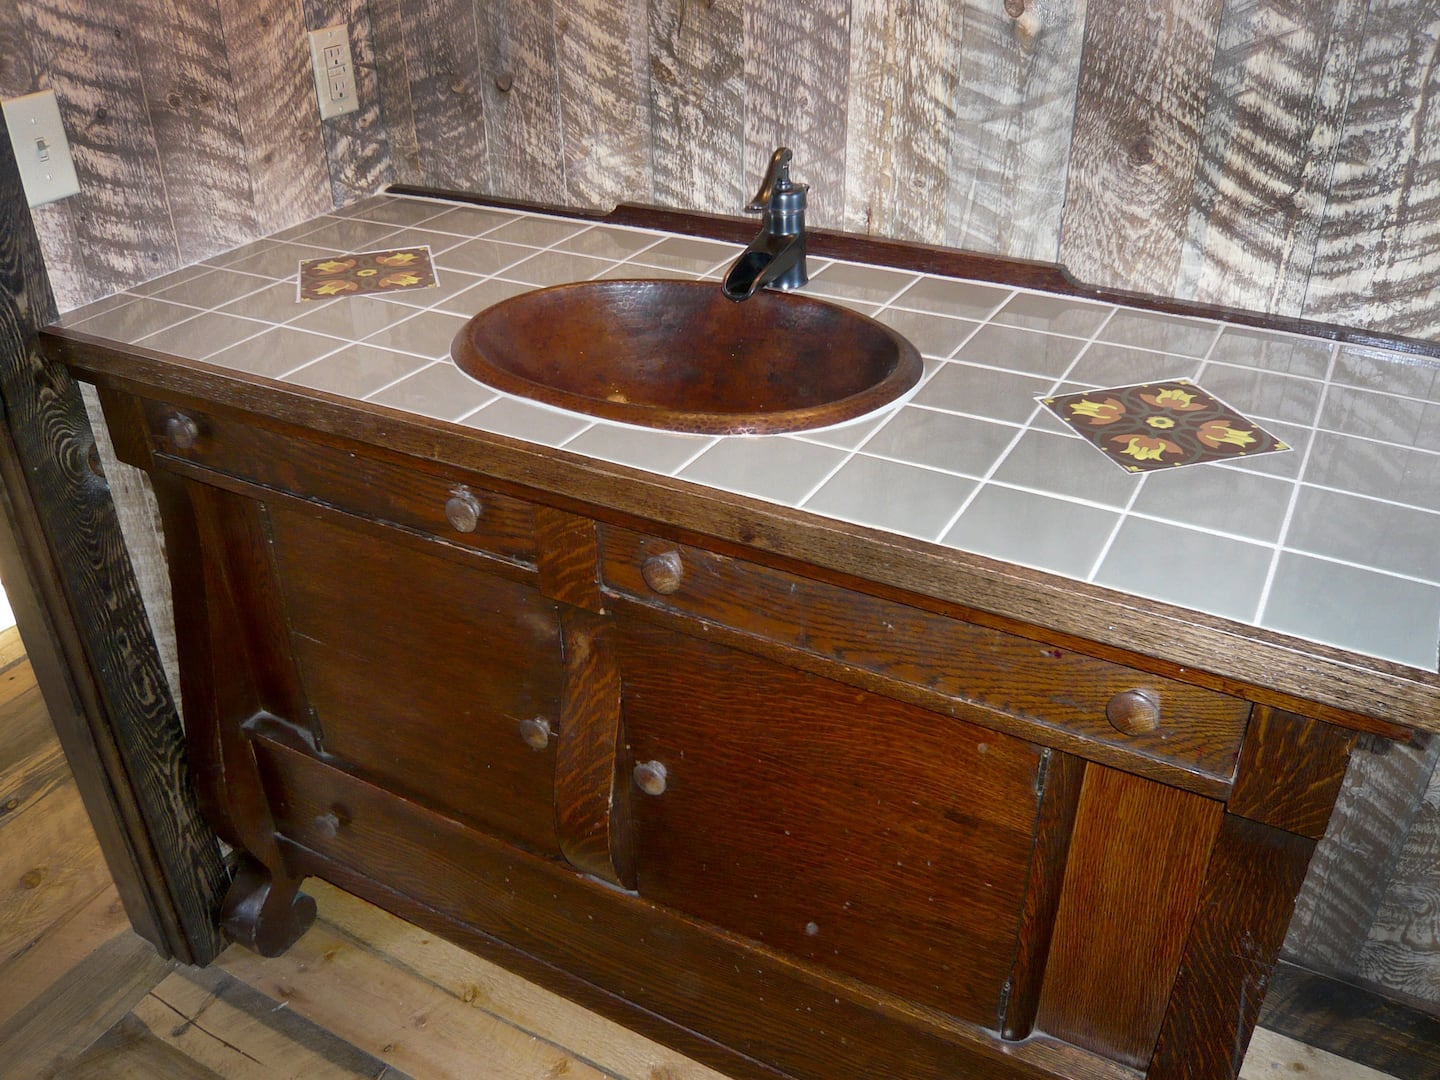 Antique Sideboard Converted Into Bathroom Vanity With Hammered Drop In  Copper Sink